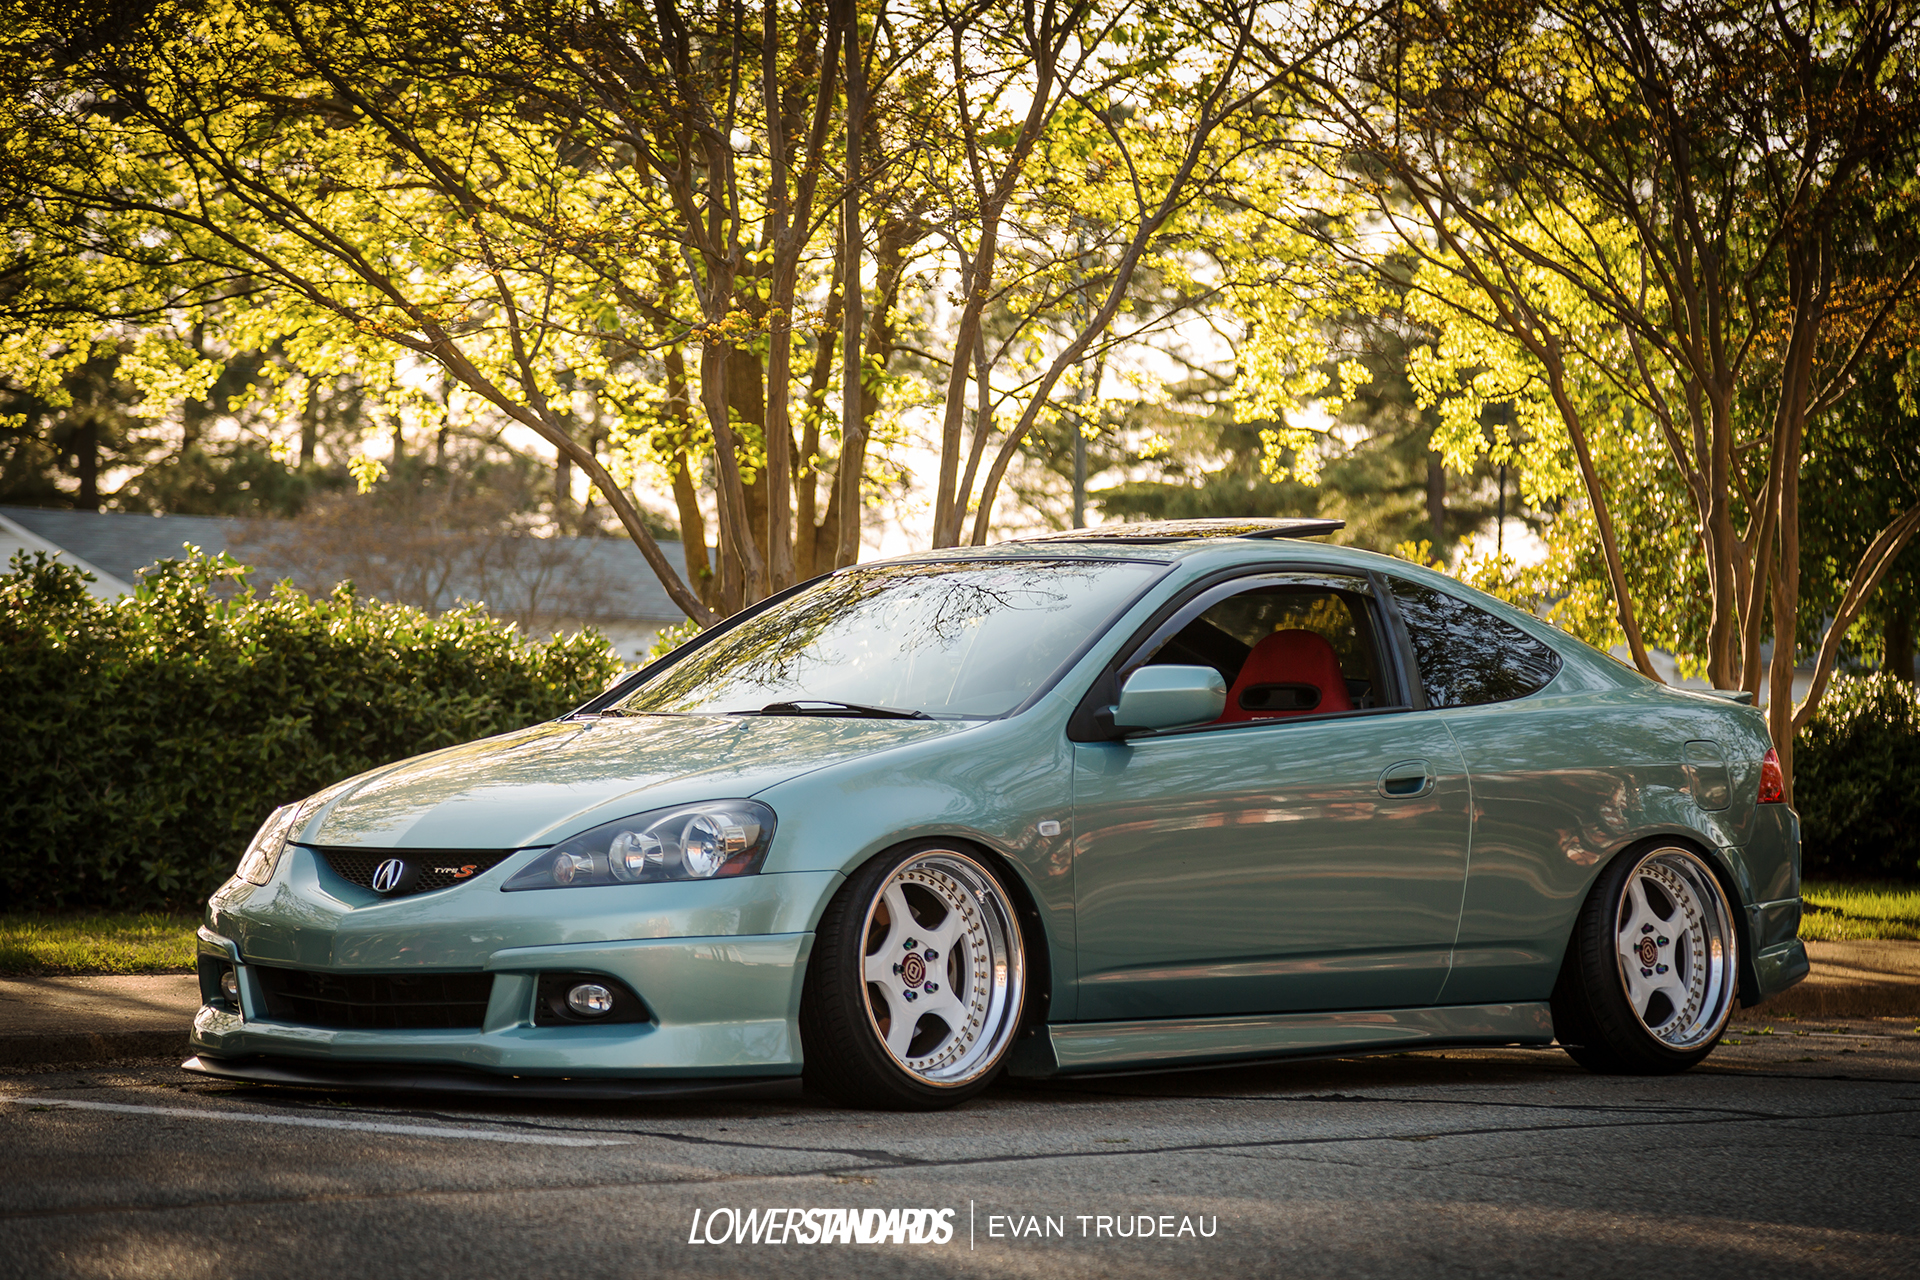 Kyle Huxford Rsx TypeS Lower StandardsLower Standards - 2006 acura rsx type s wheels